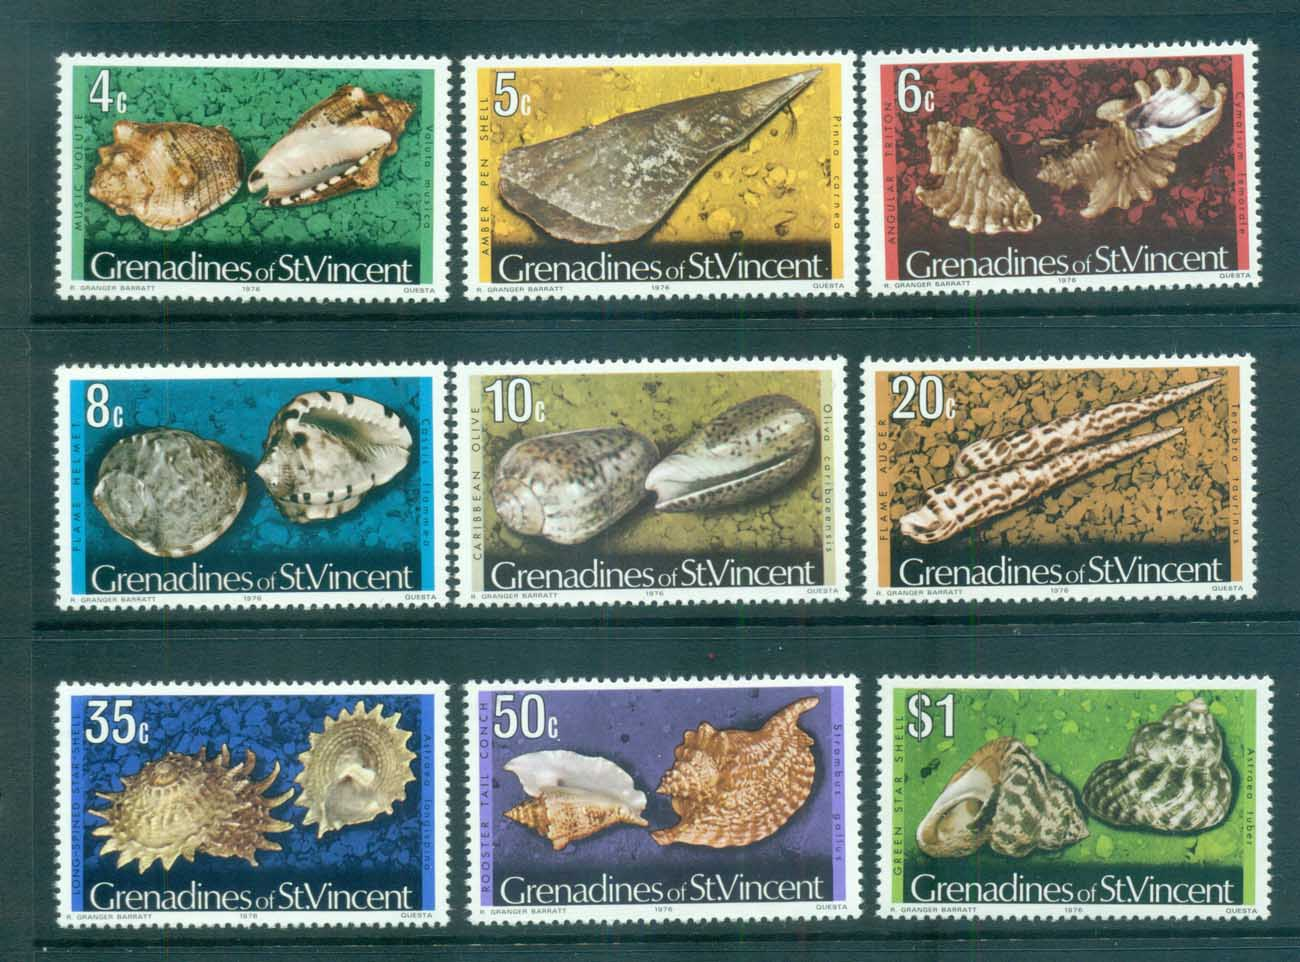 St Vincent Grenadines 1974-76 Shell Definitives 1976 date MUH lot72952